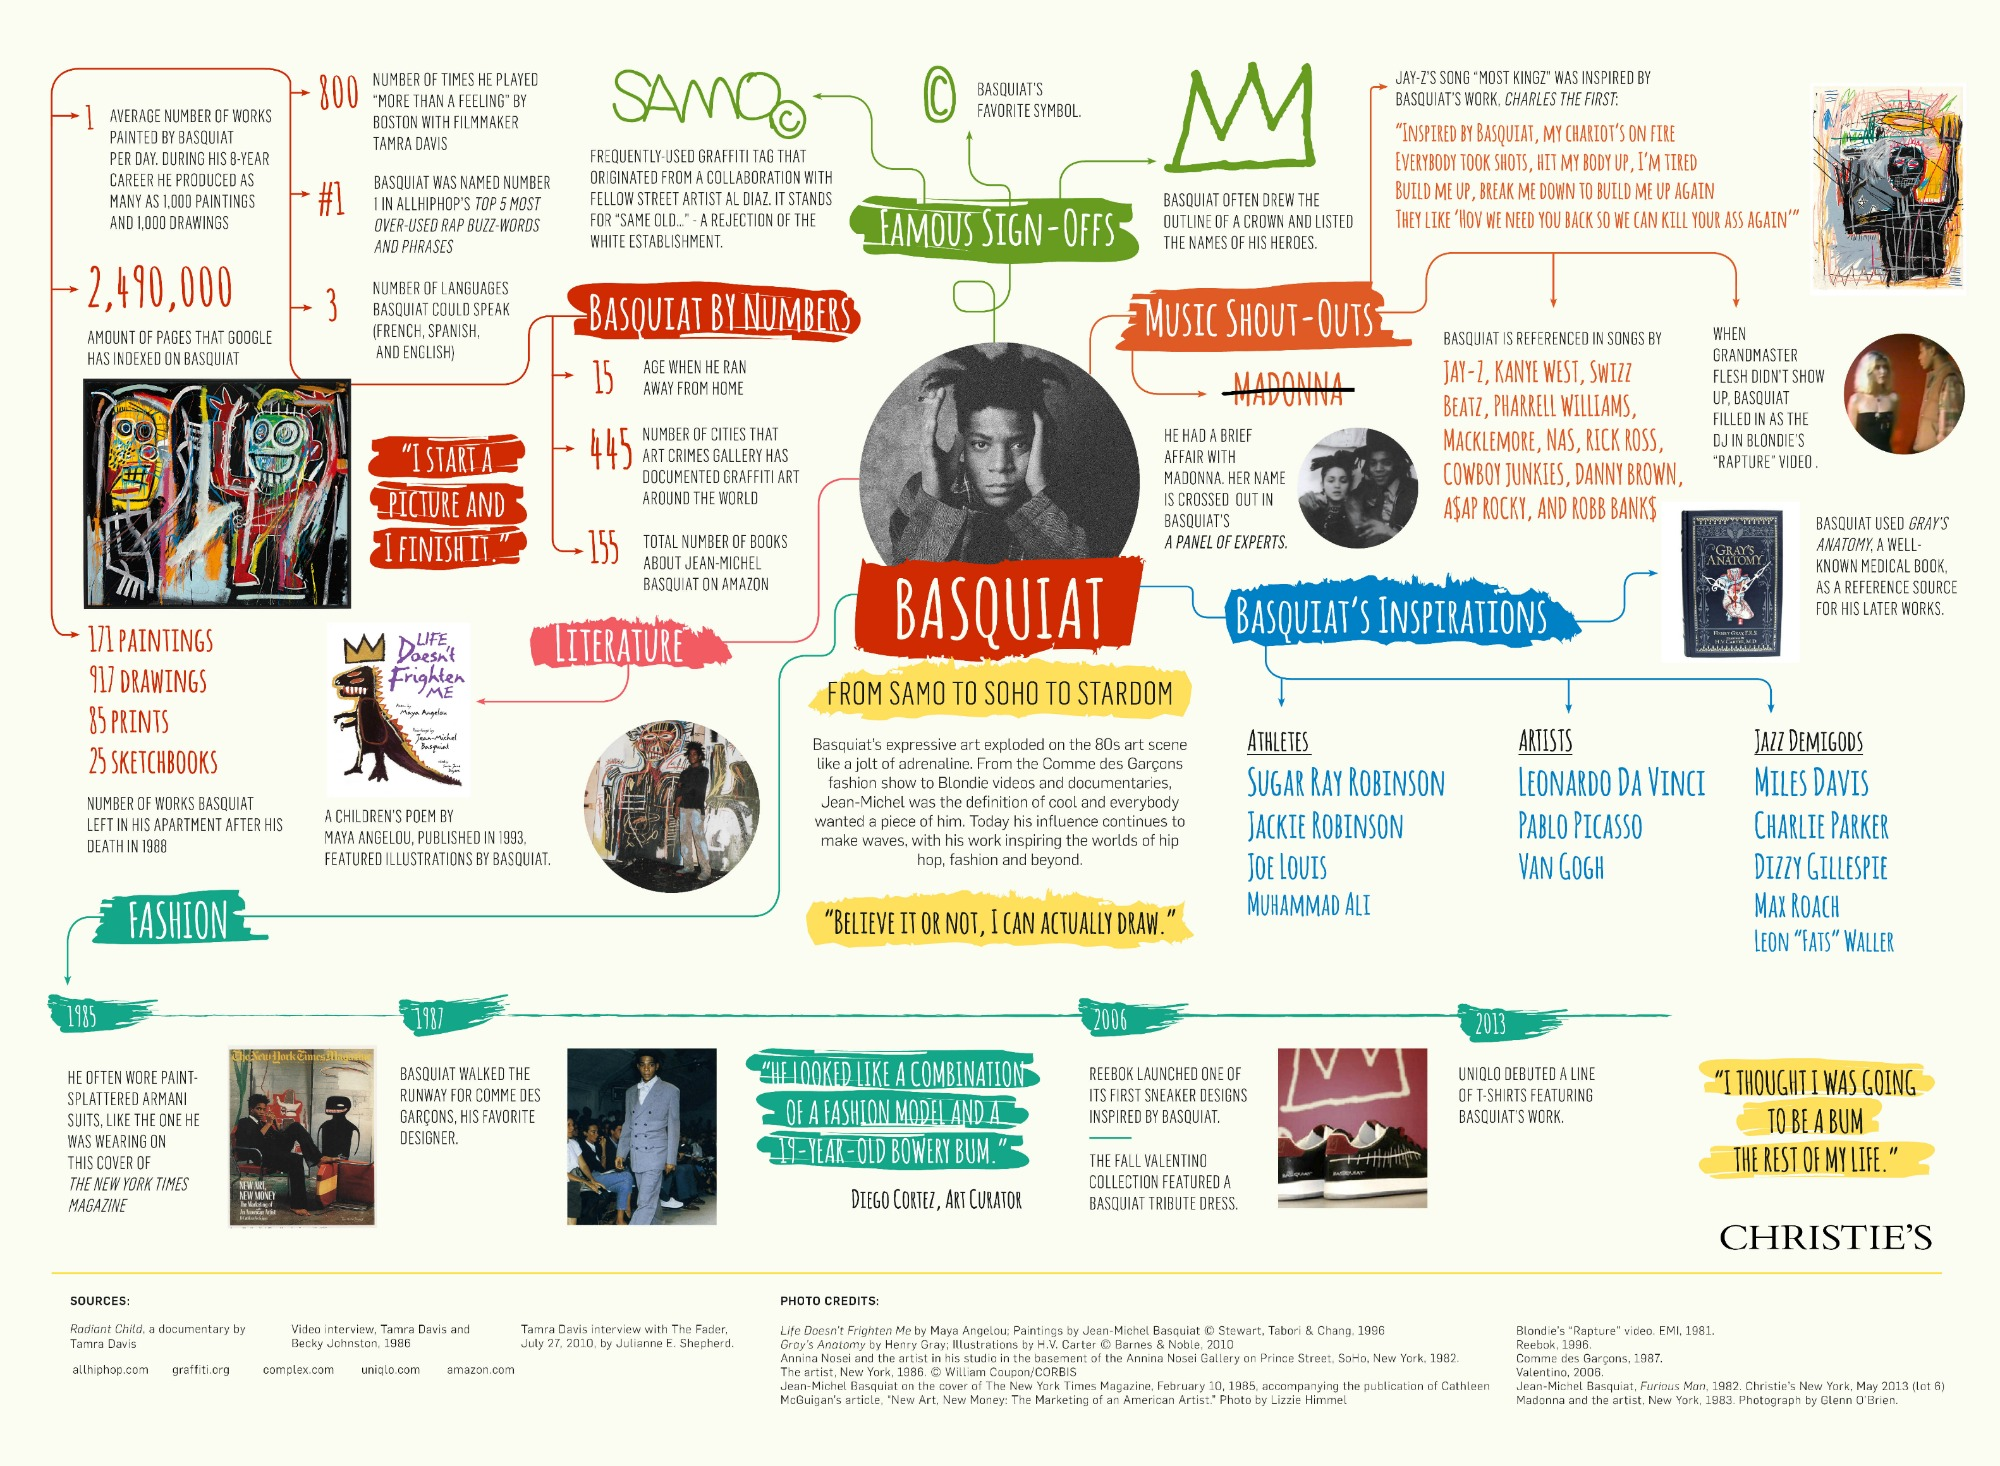 Basquiat From Samo To Soho To Stardom Infographic